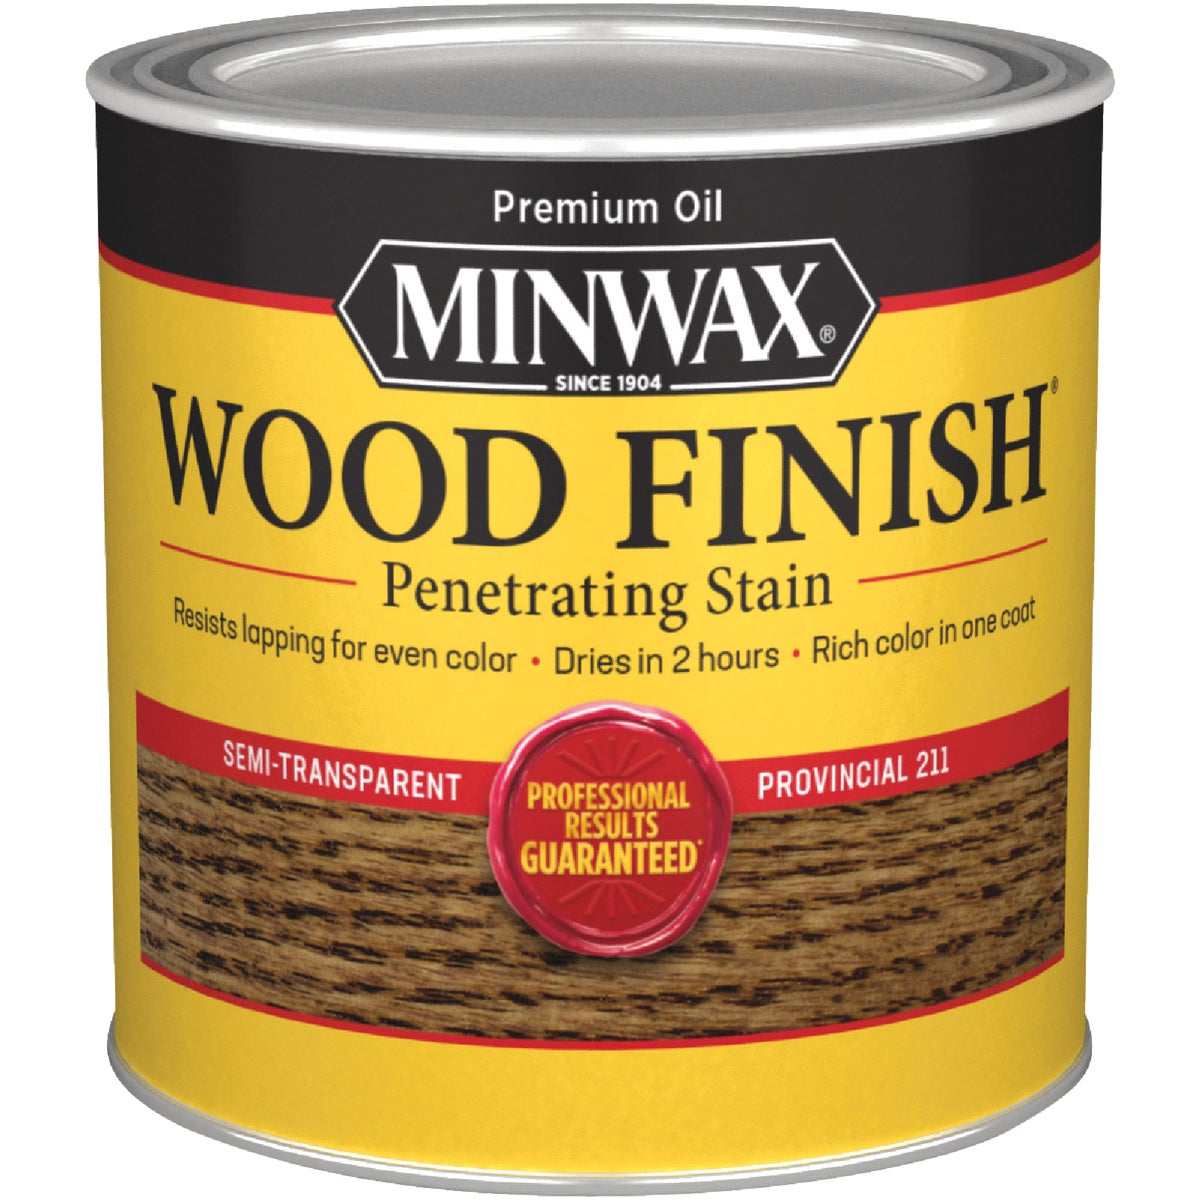 PROVINCIAL WOOD STAIN - 221104444 by Minwax Company